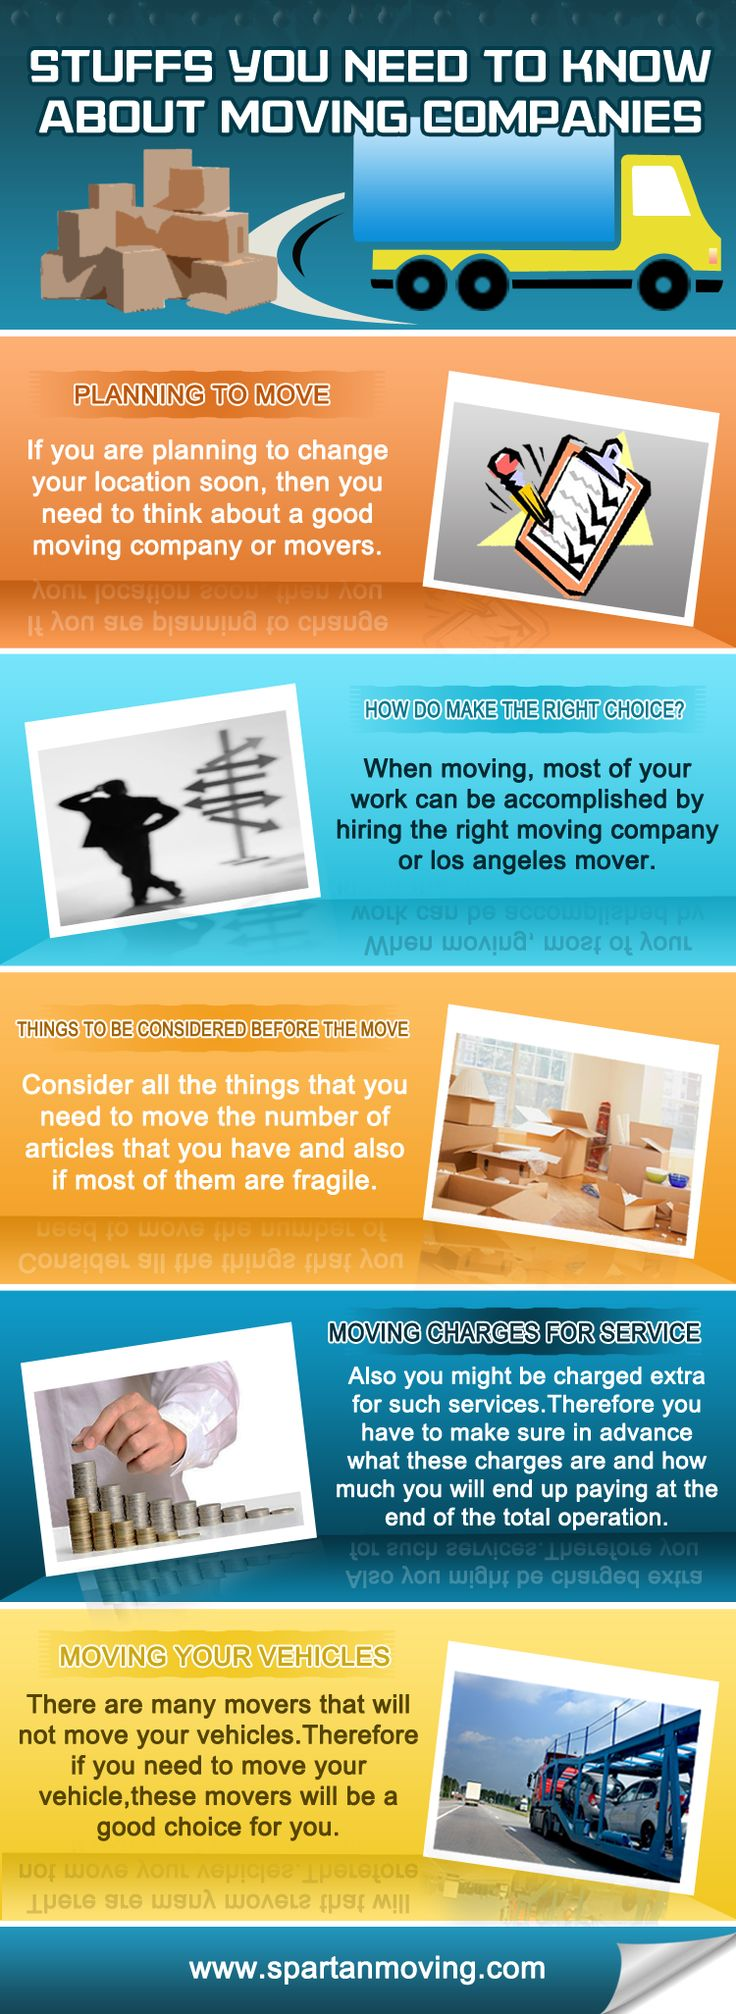 If you are planning to change your location soon, then you need to think about a good moving company or movers. When moving, most of your work can be accomplished by hiring the right moving company or los angeles mover.